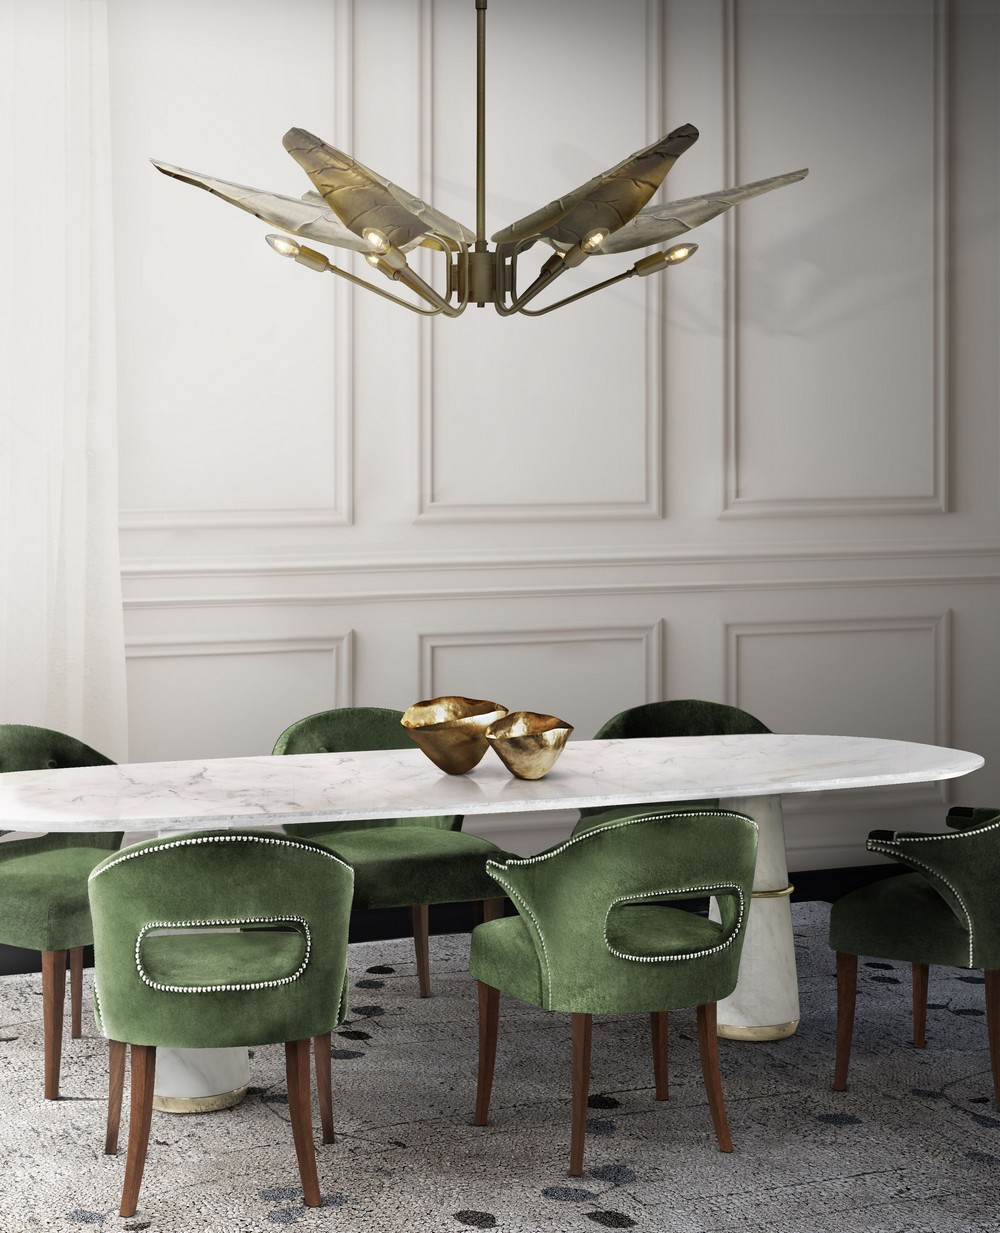 Dining Room Styling: The Best Winter Design Trends For 2020 dining room styling Dining Room Styling: The Best Winter Design Trends For 2020 structured simplicty winter design trends Dining Room Styling: The Best Winter Design Trends structured simplicty